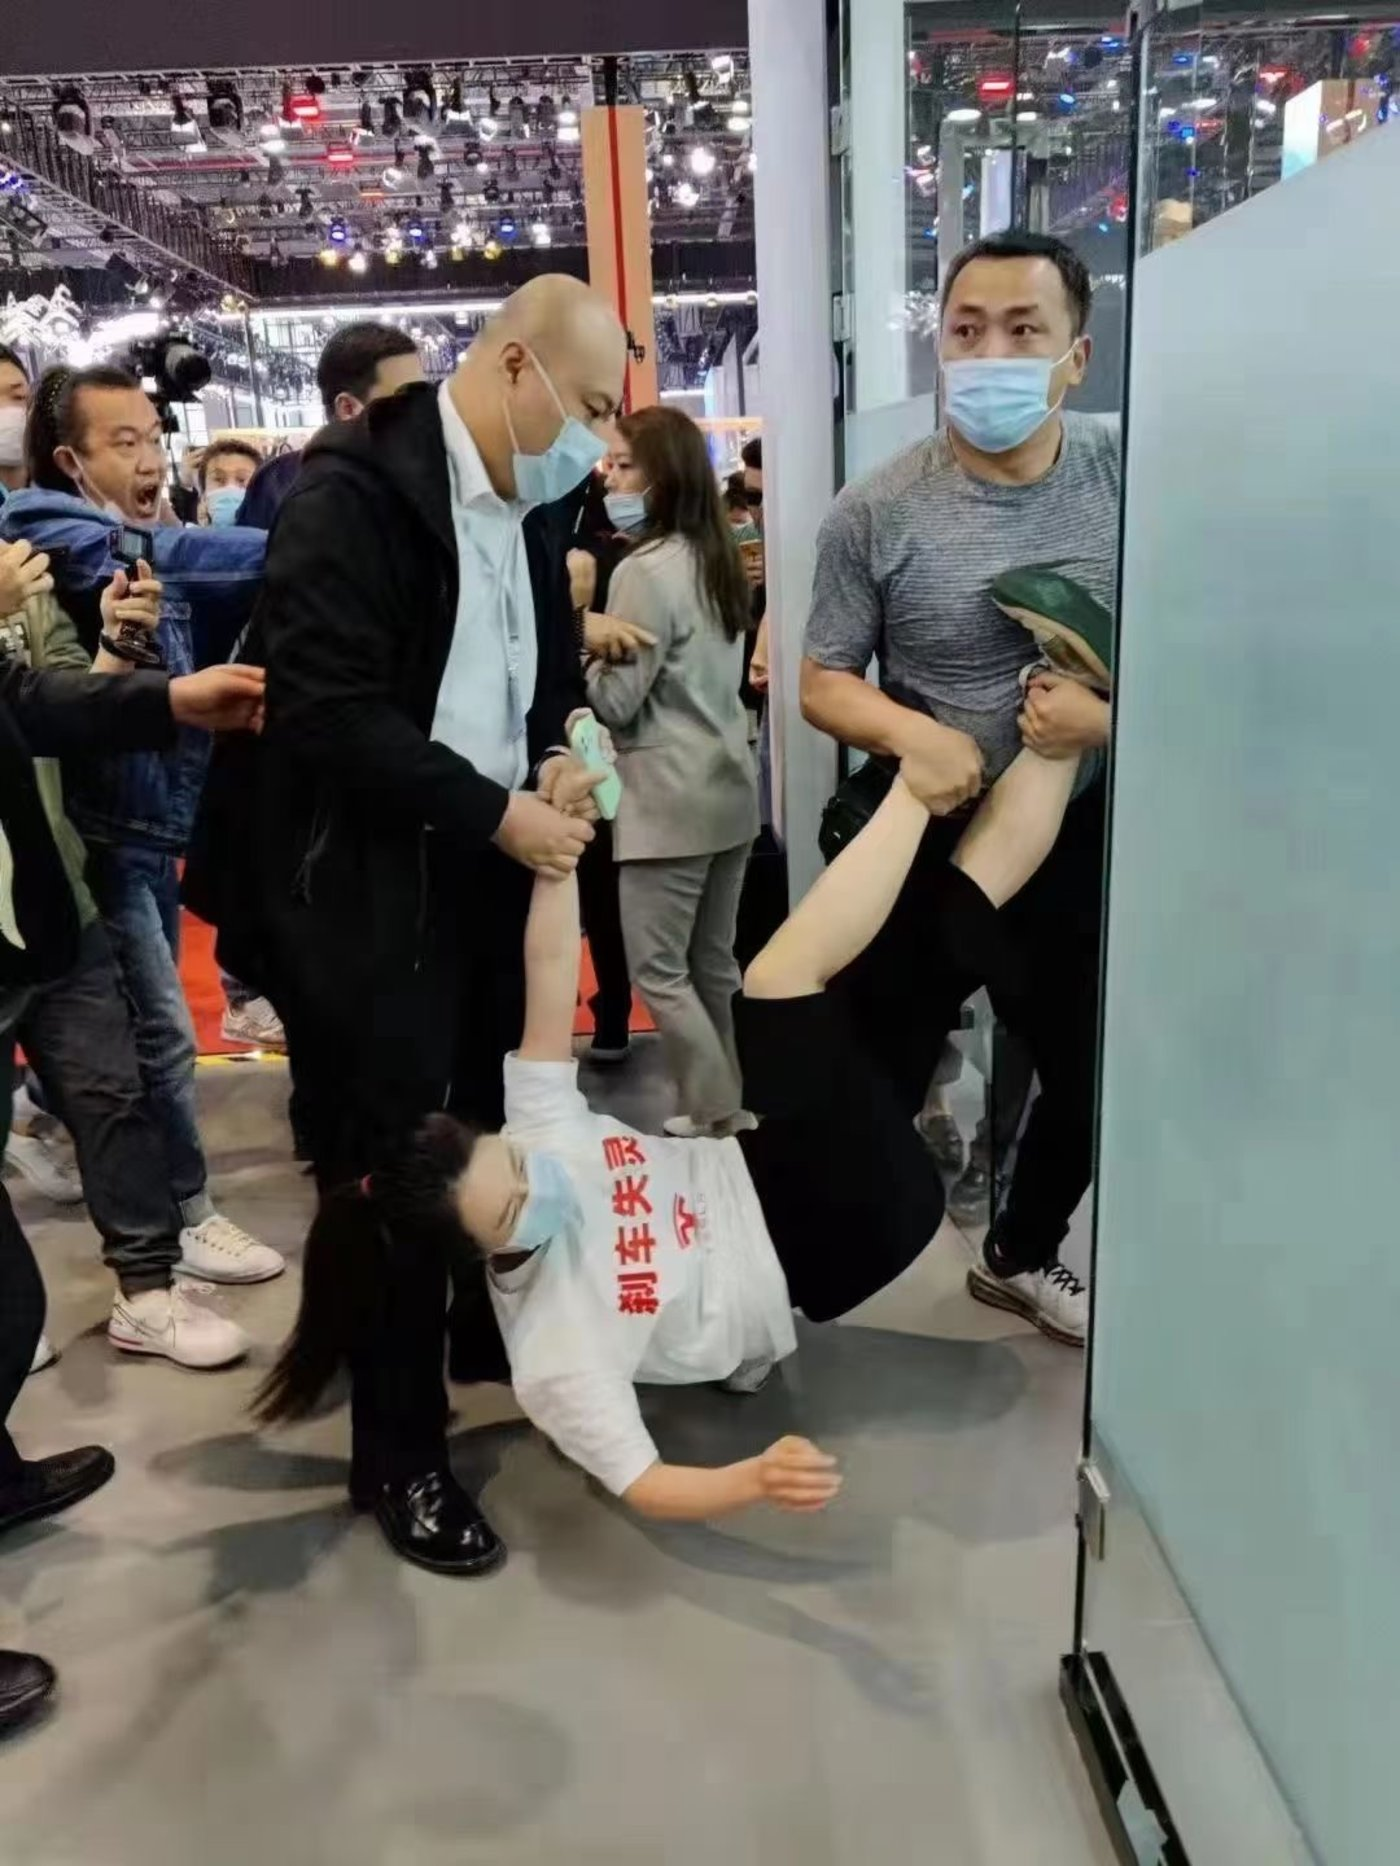 a protester was dragged away